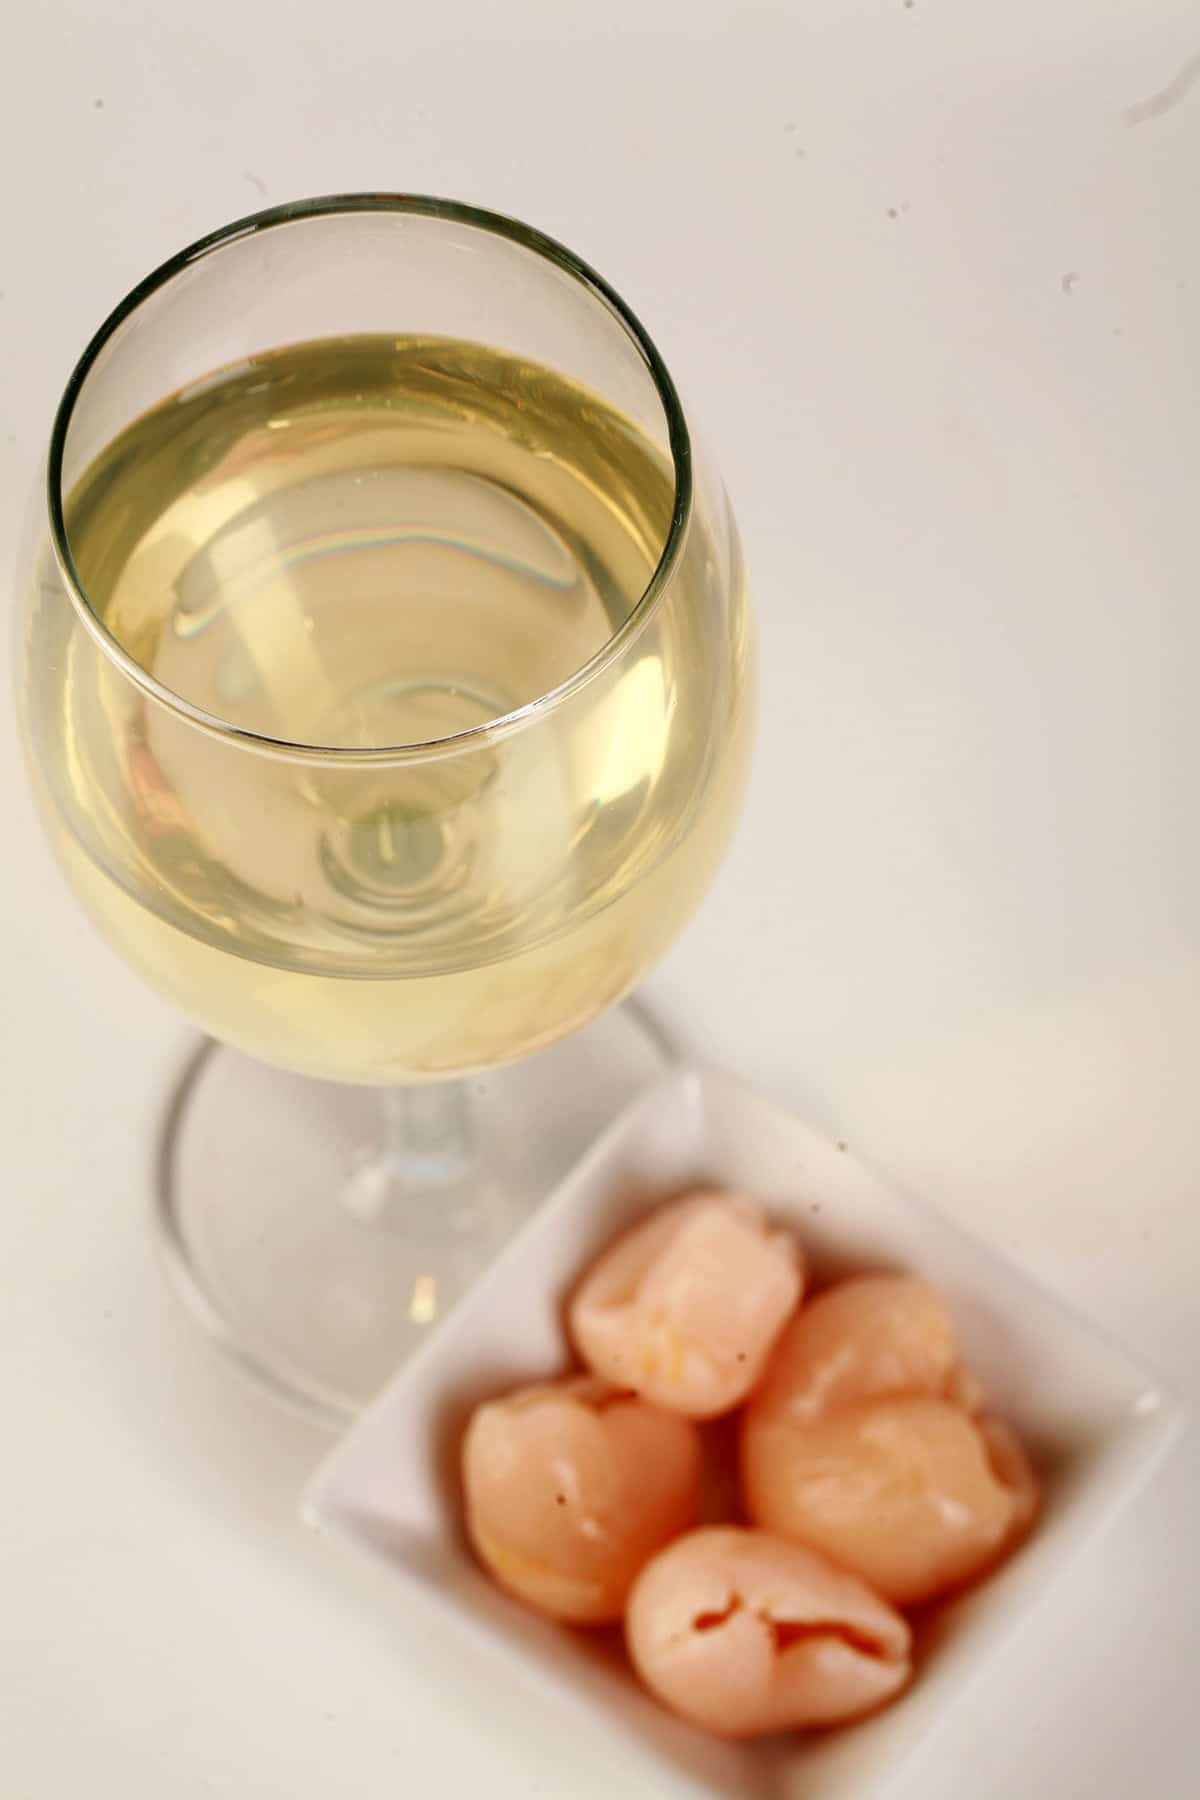 A glass of white wine is shown next to a small bowl of lychee fruit.